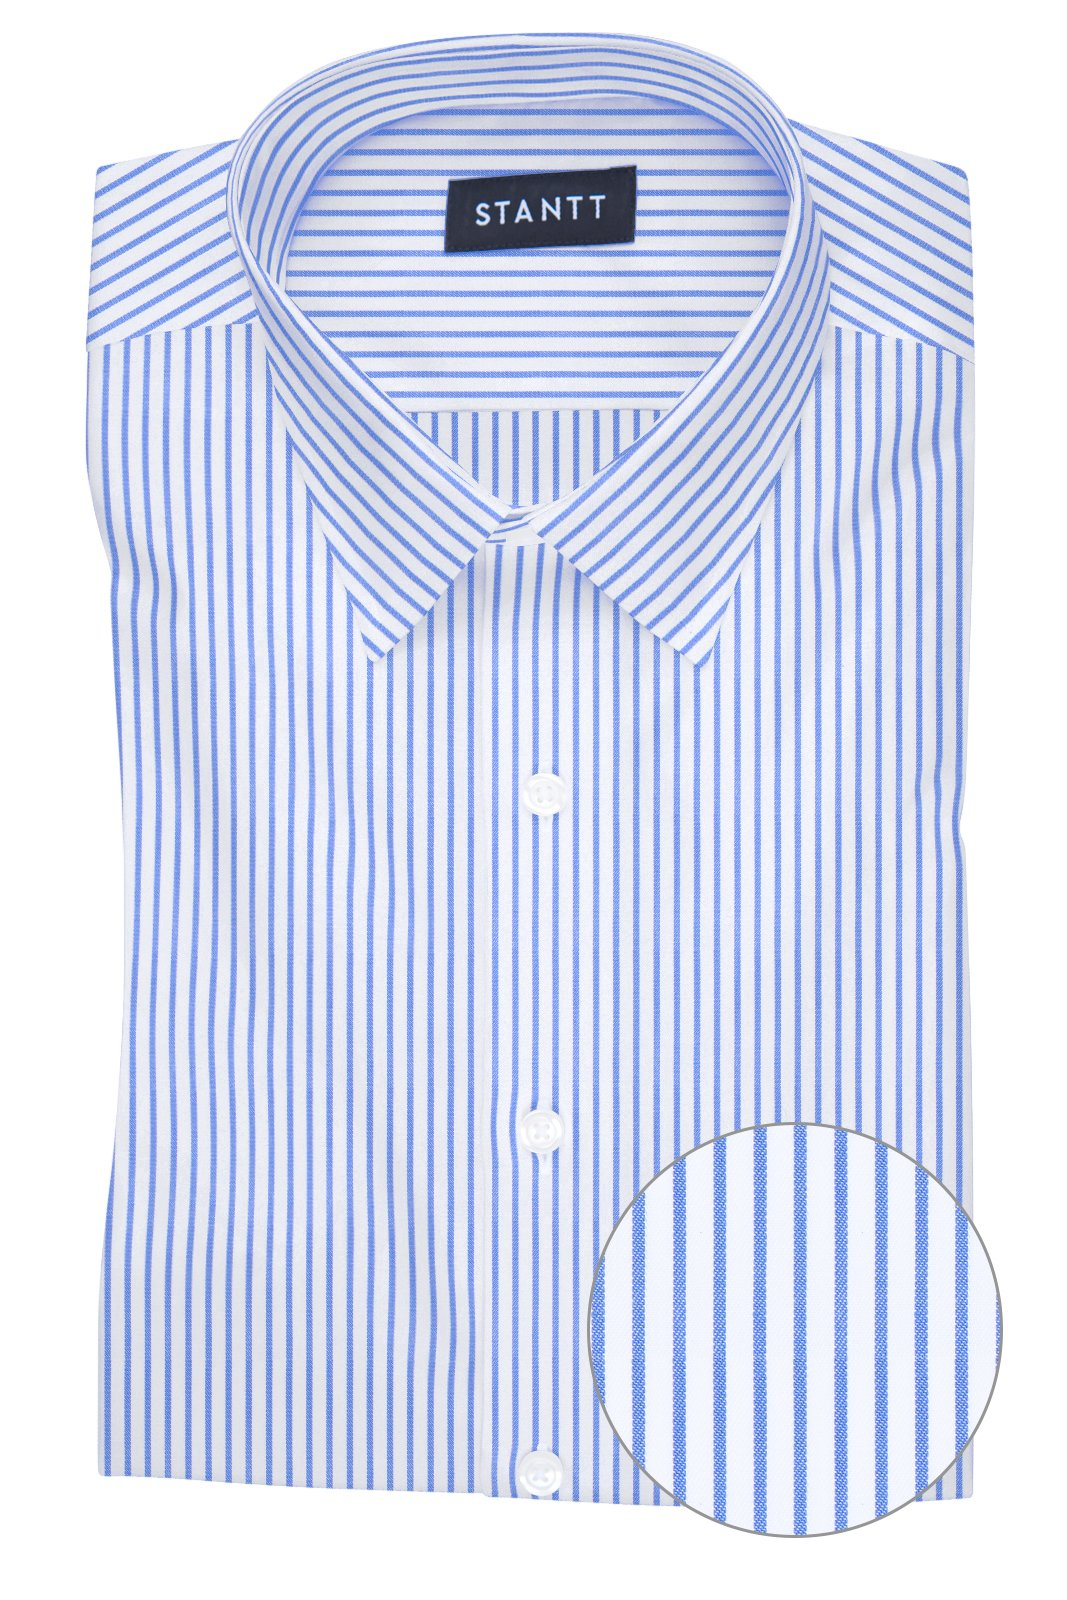 Wrinkle-Resistant Blue Bengal Stripe: Semi-Spread Collar, French Cuff